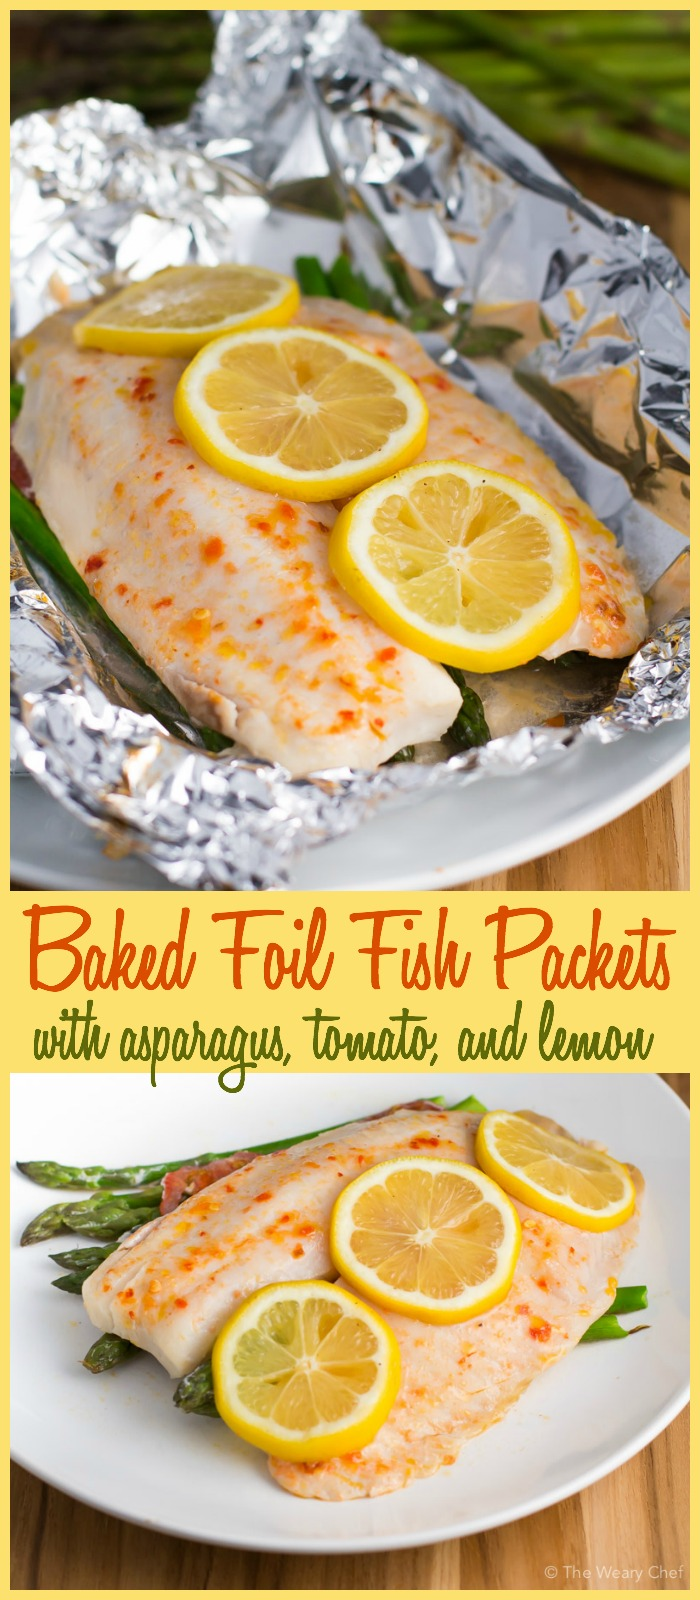 baked-foil-fish-packets-collage